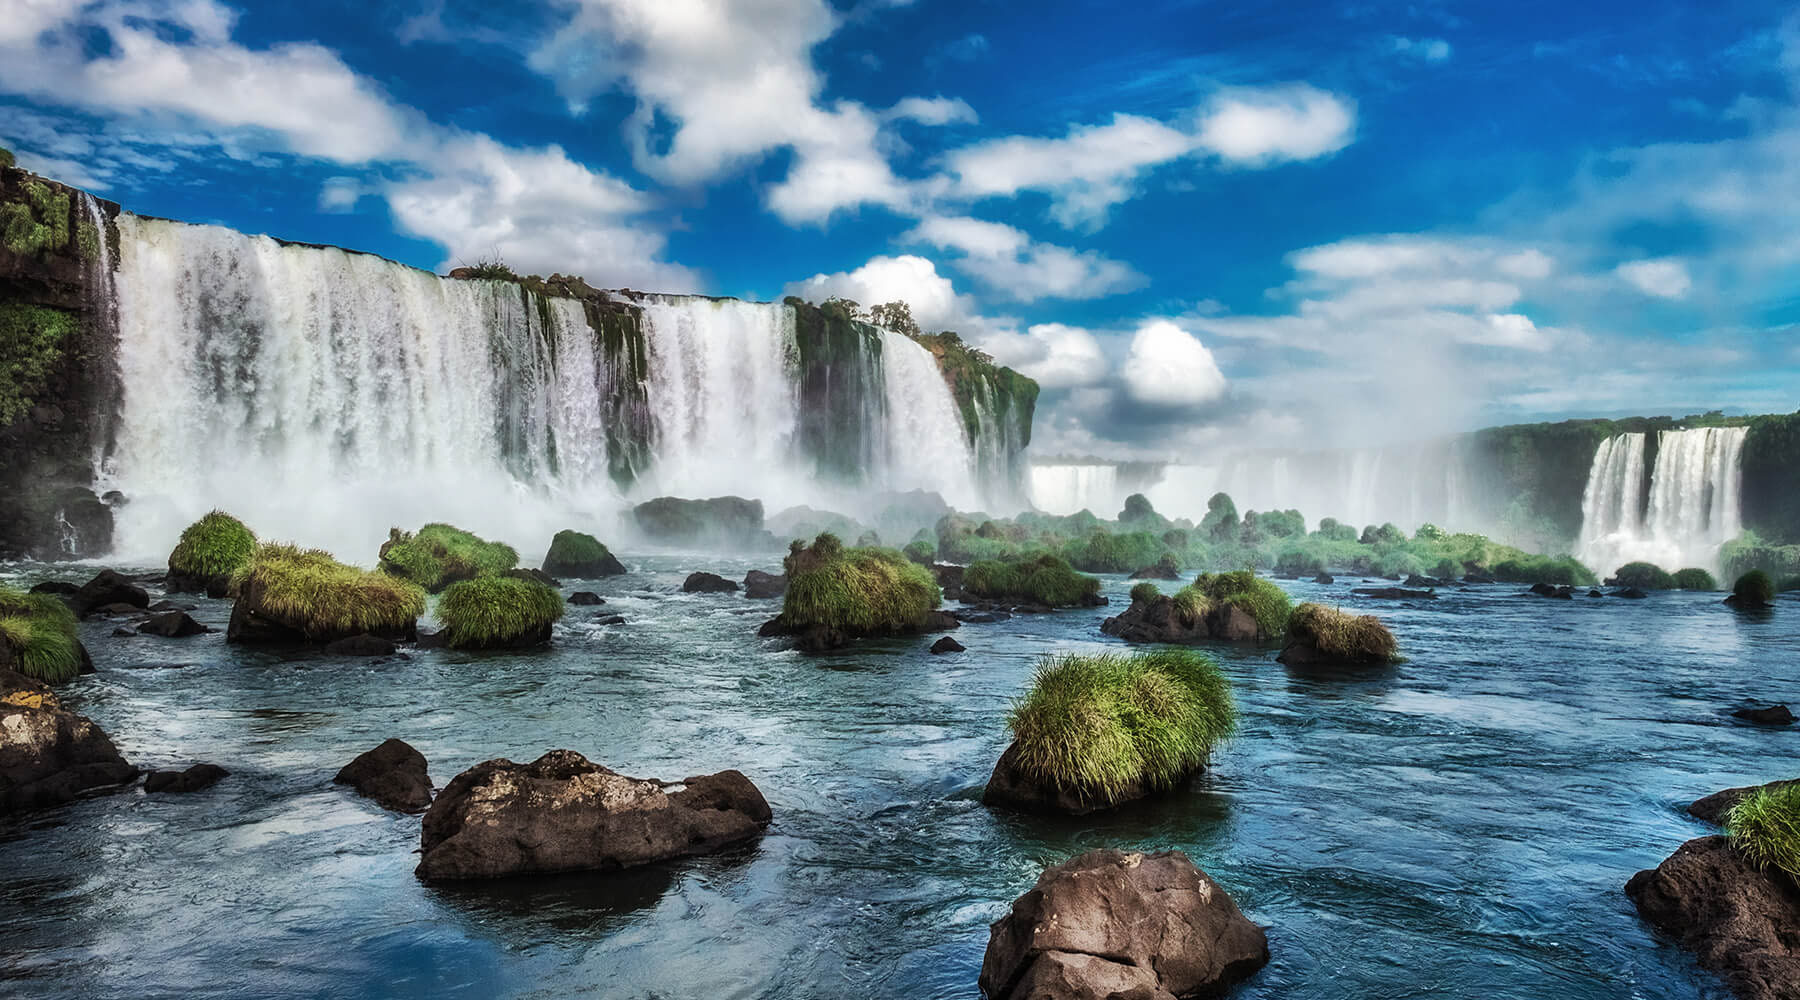 17-NIGHT ANTARCTICA VOYAGE & 4-NIGHT PRE IGUAZU FALLS